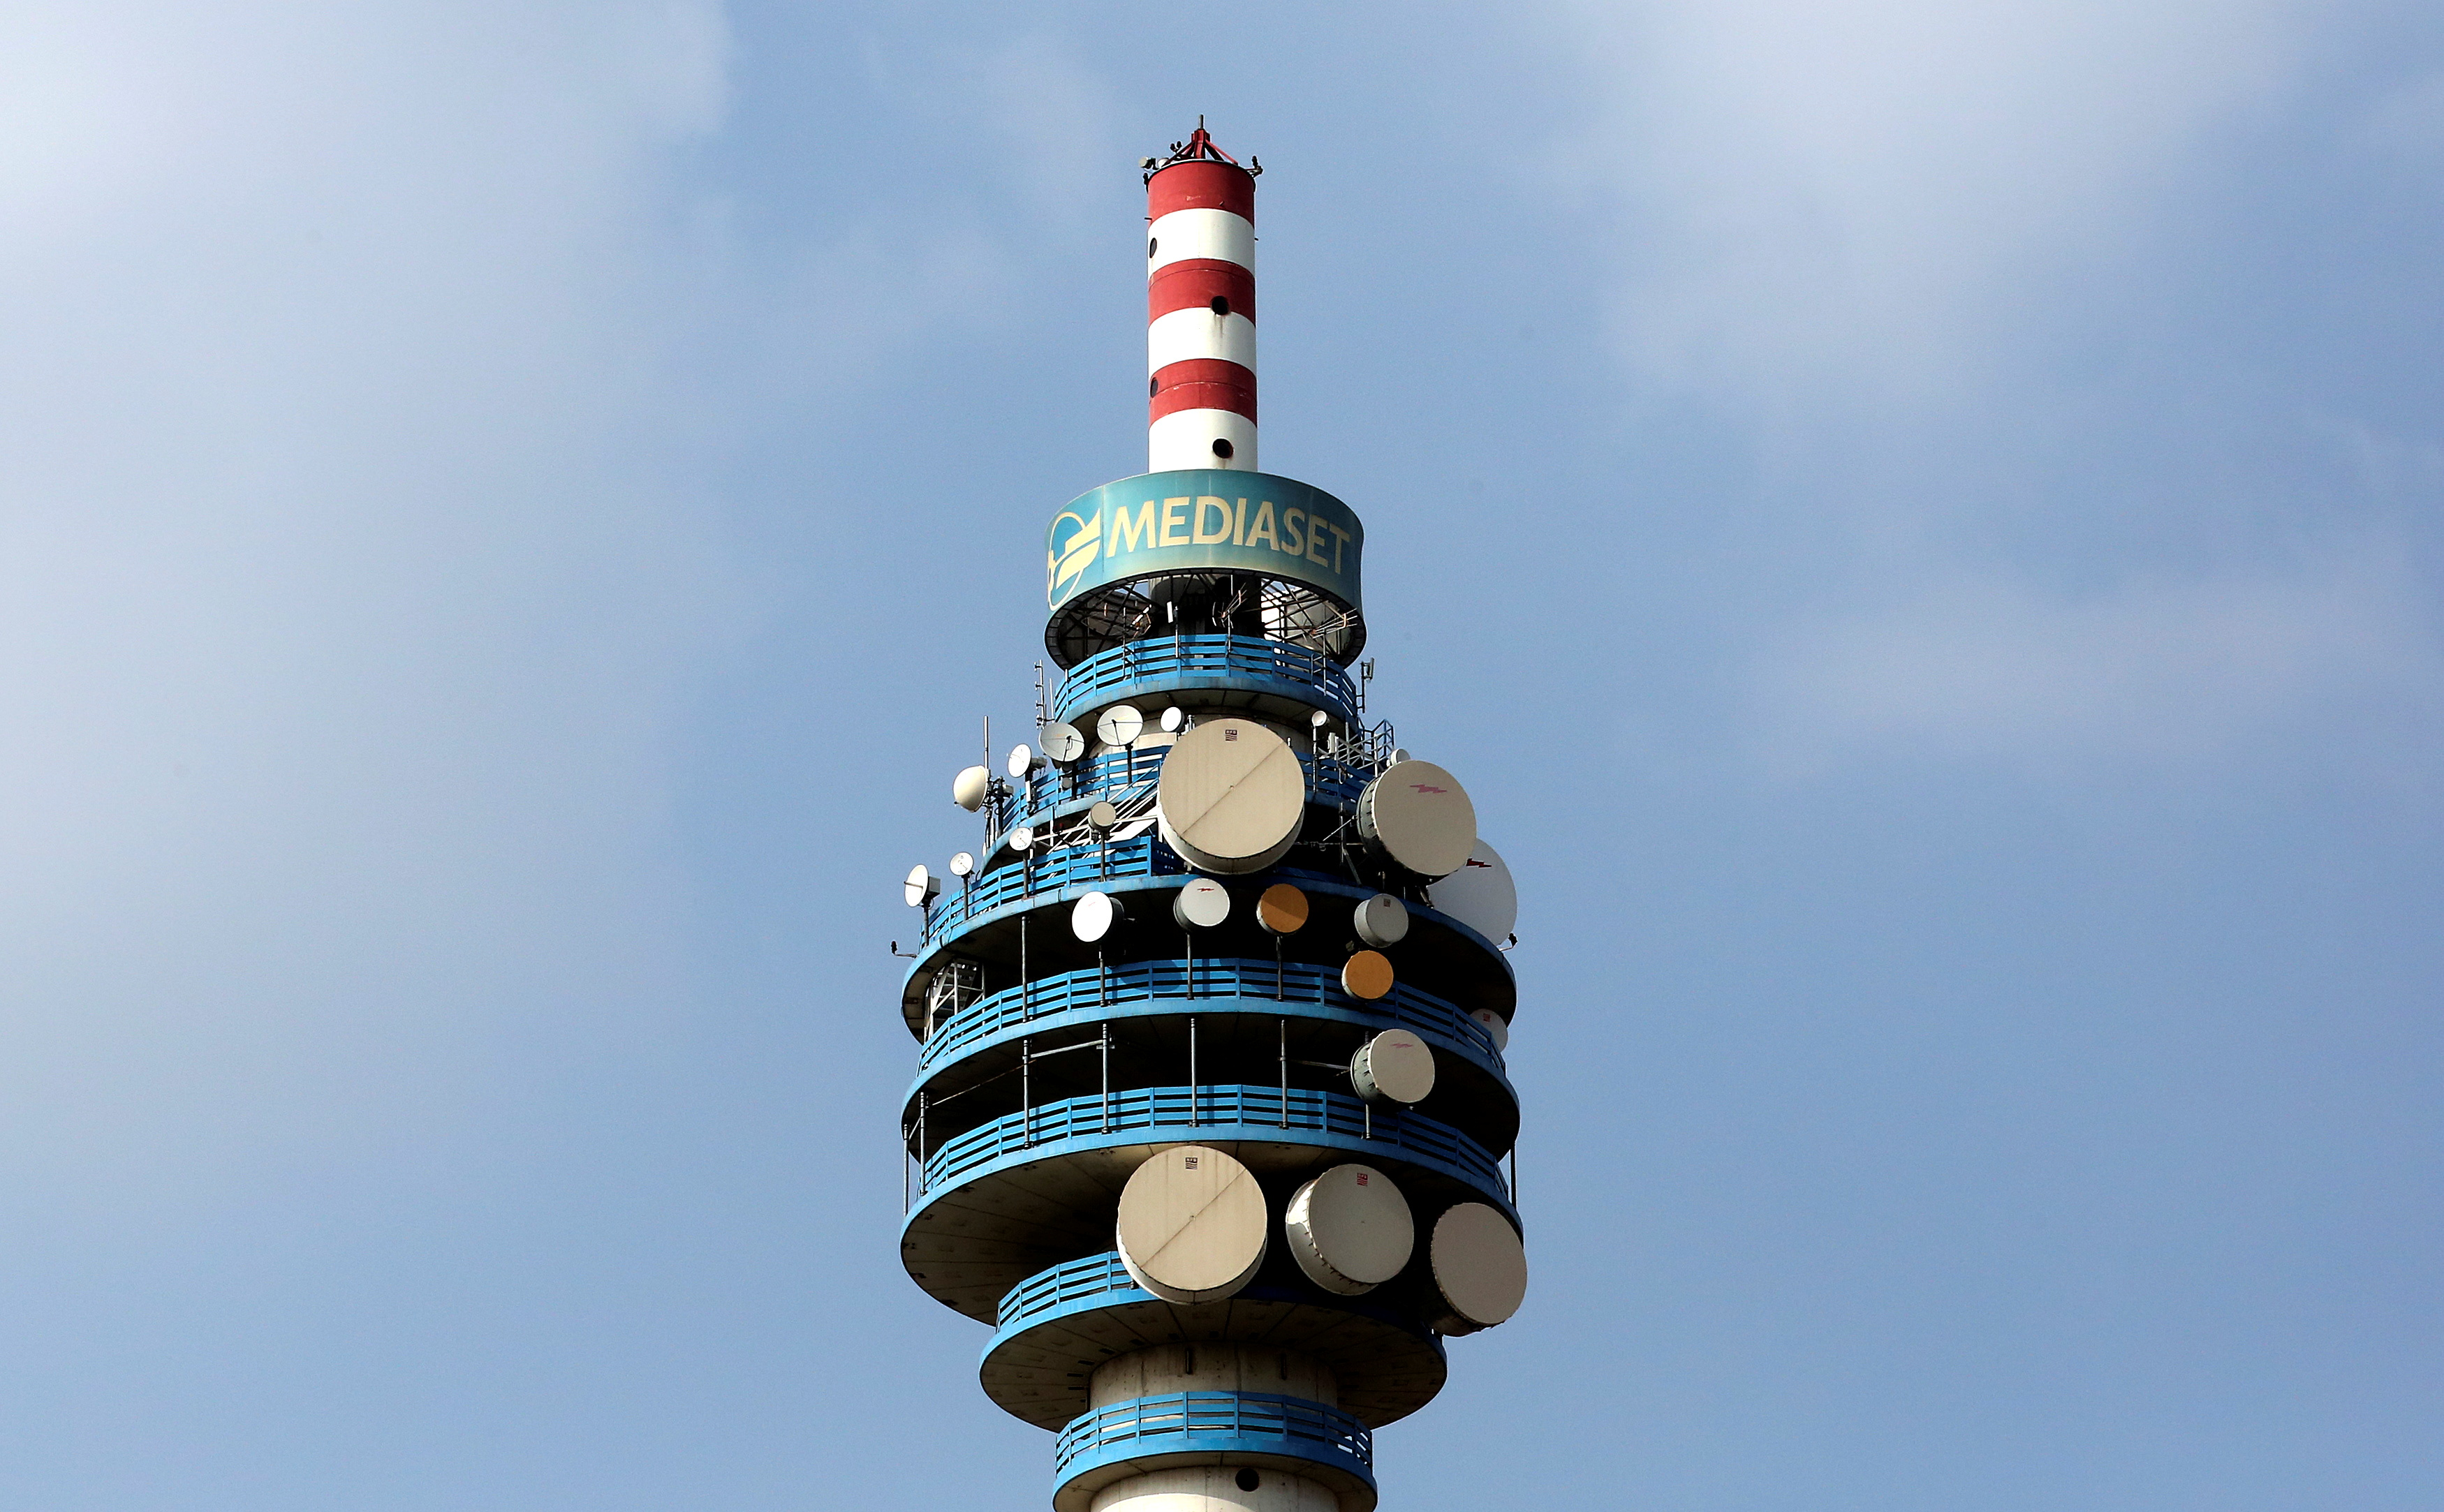 The Mediaset tower is seen in Cologno Monzese neighbourhood Milan, Italy, April 7, 2016.  REUTERS/Stefano Rellandini